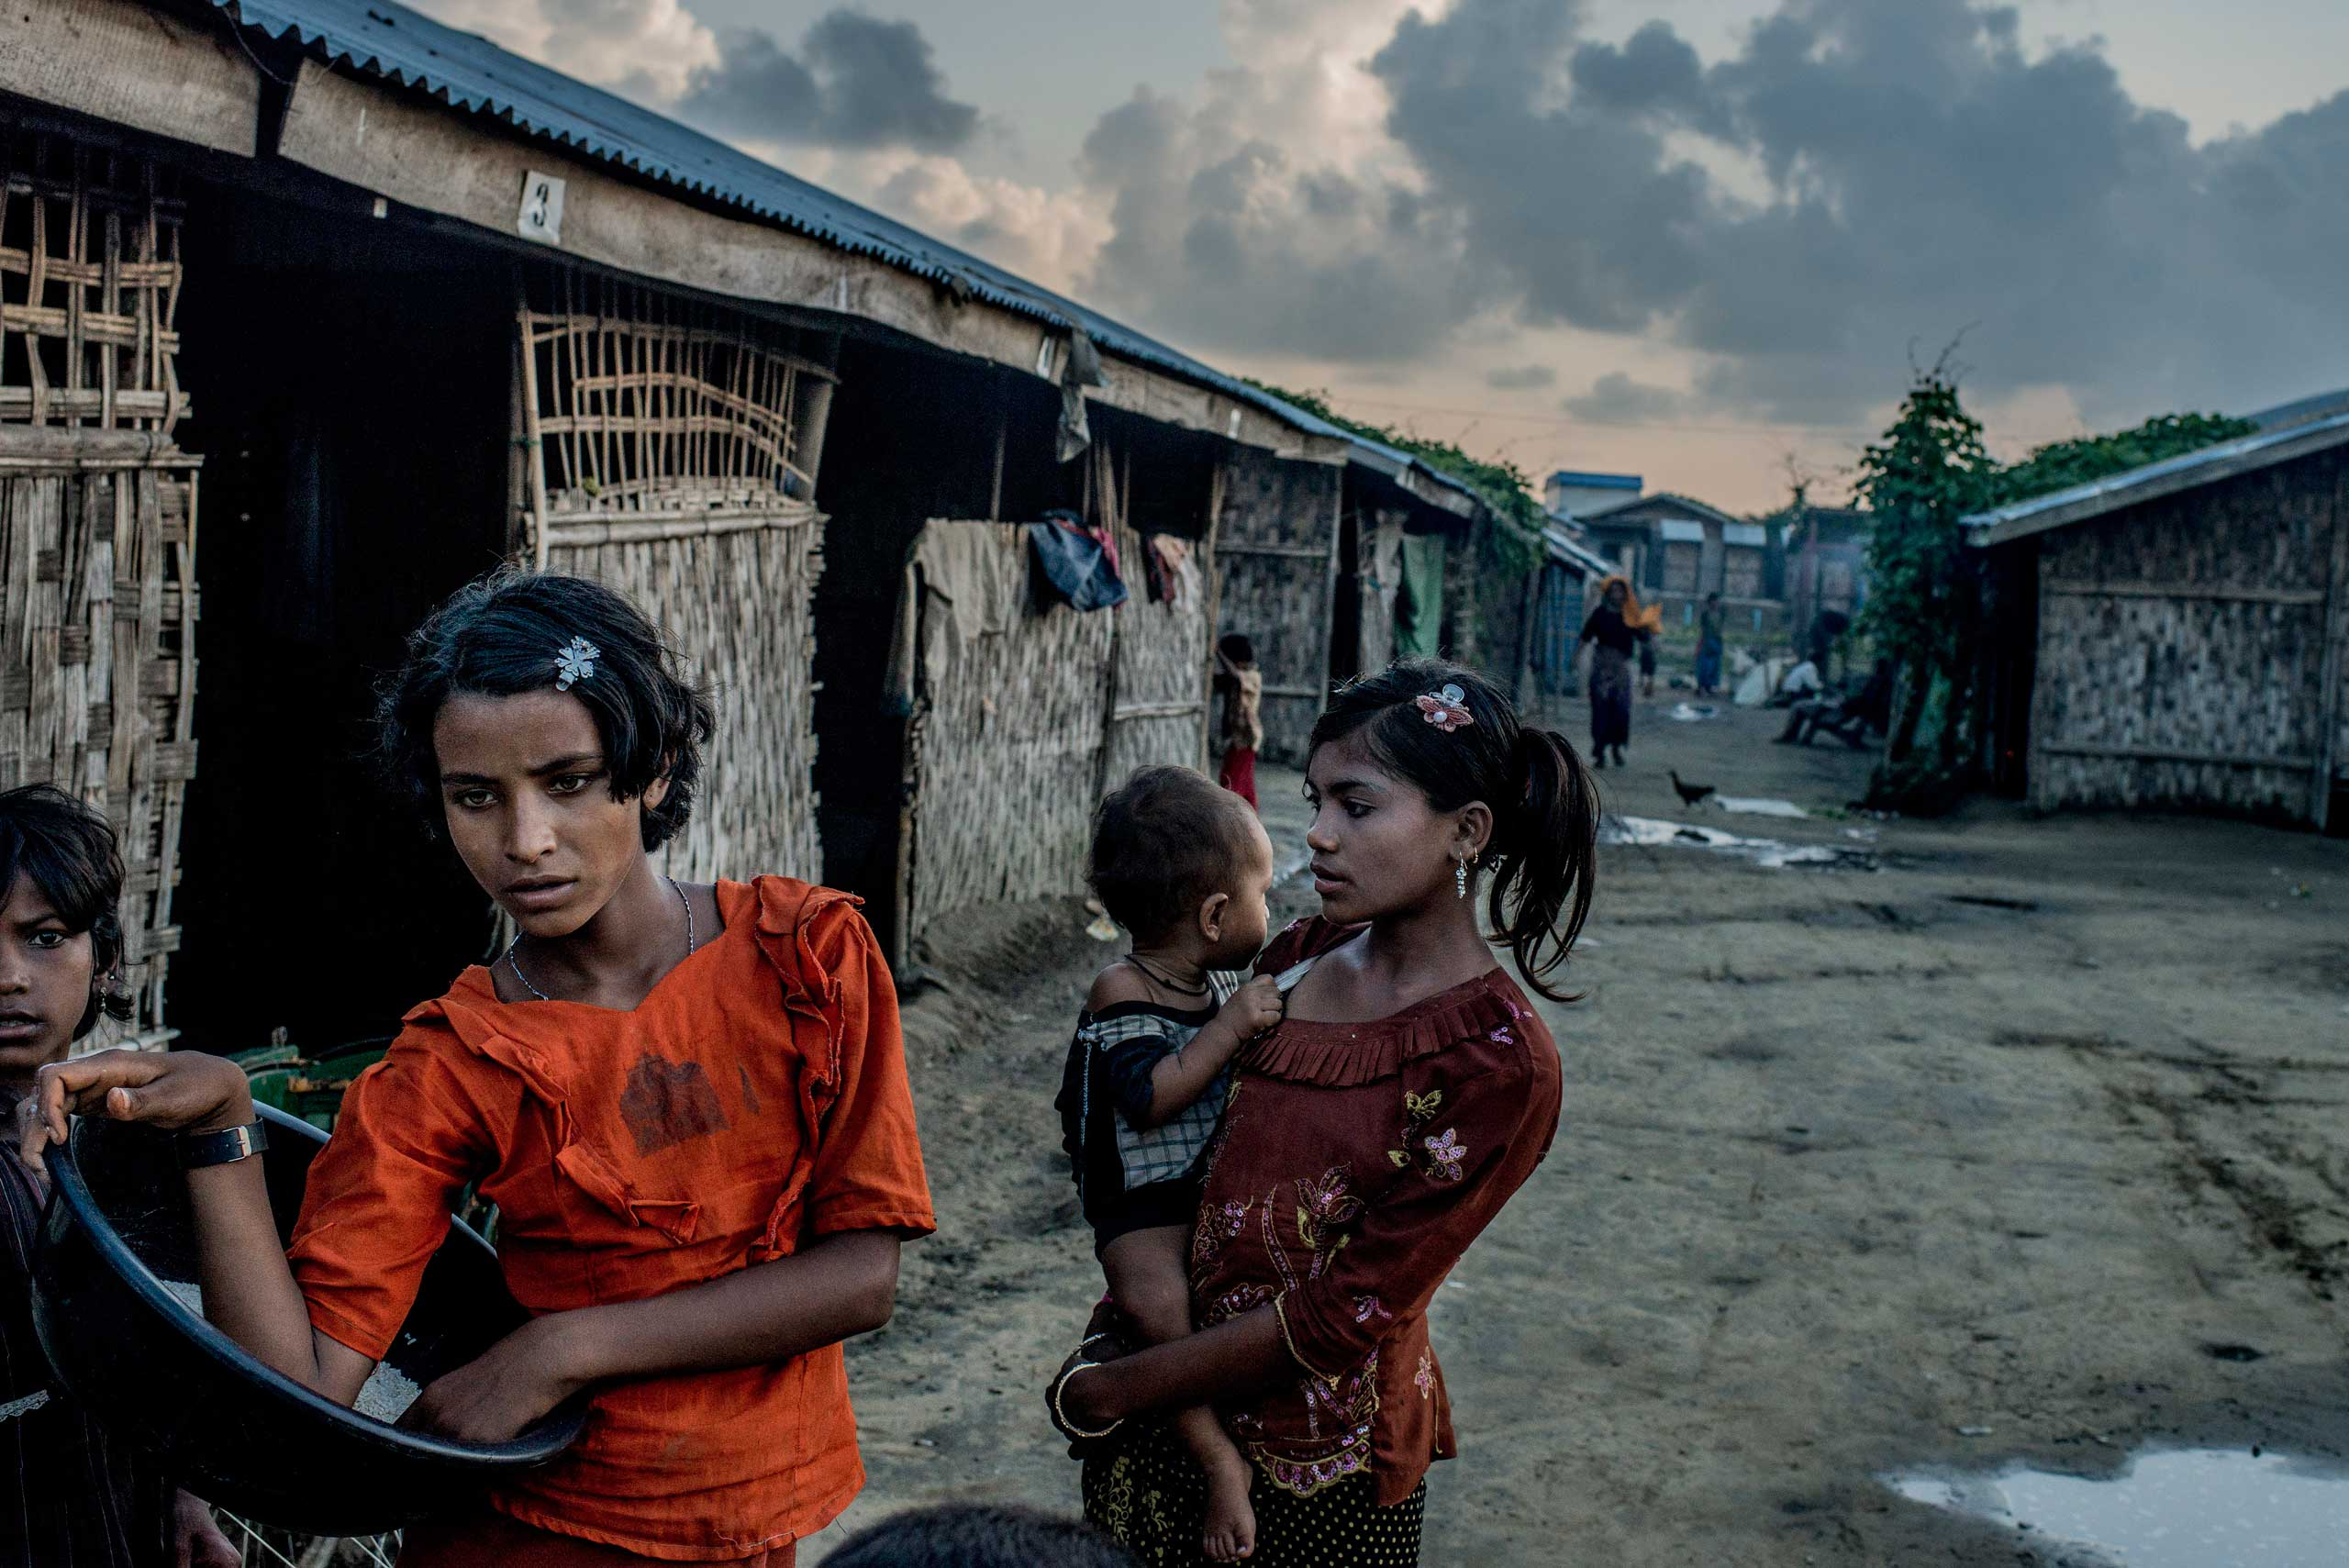 A camp full of Rohingya refugees on the edge of Sittwe, Burma, Oct. 18, 2014.